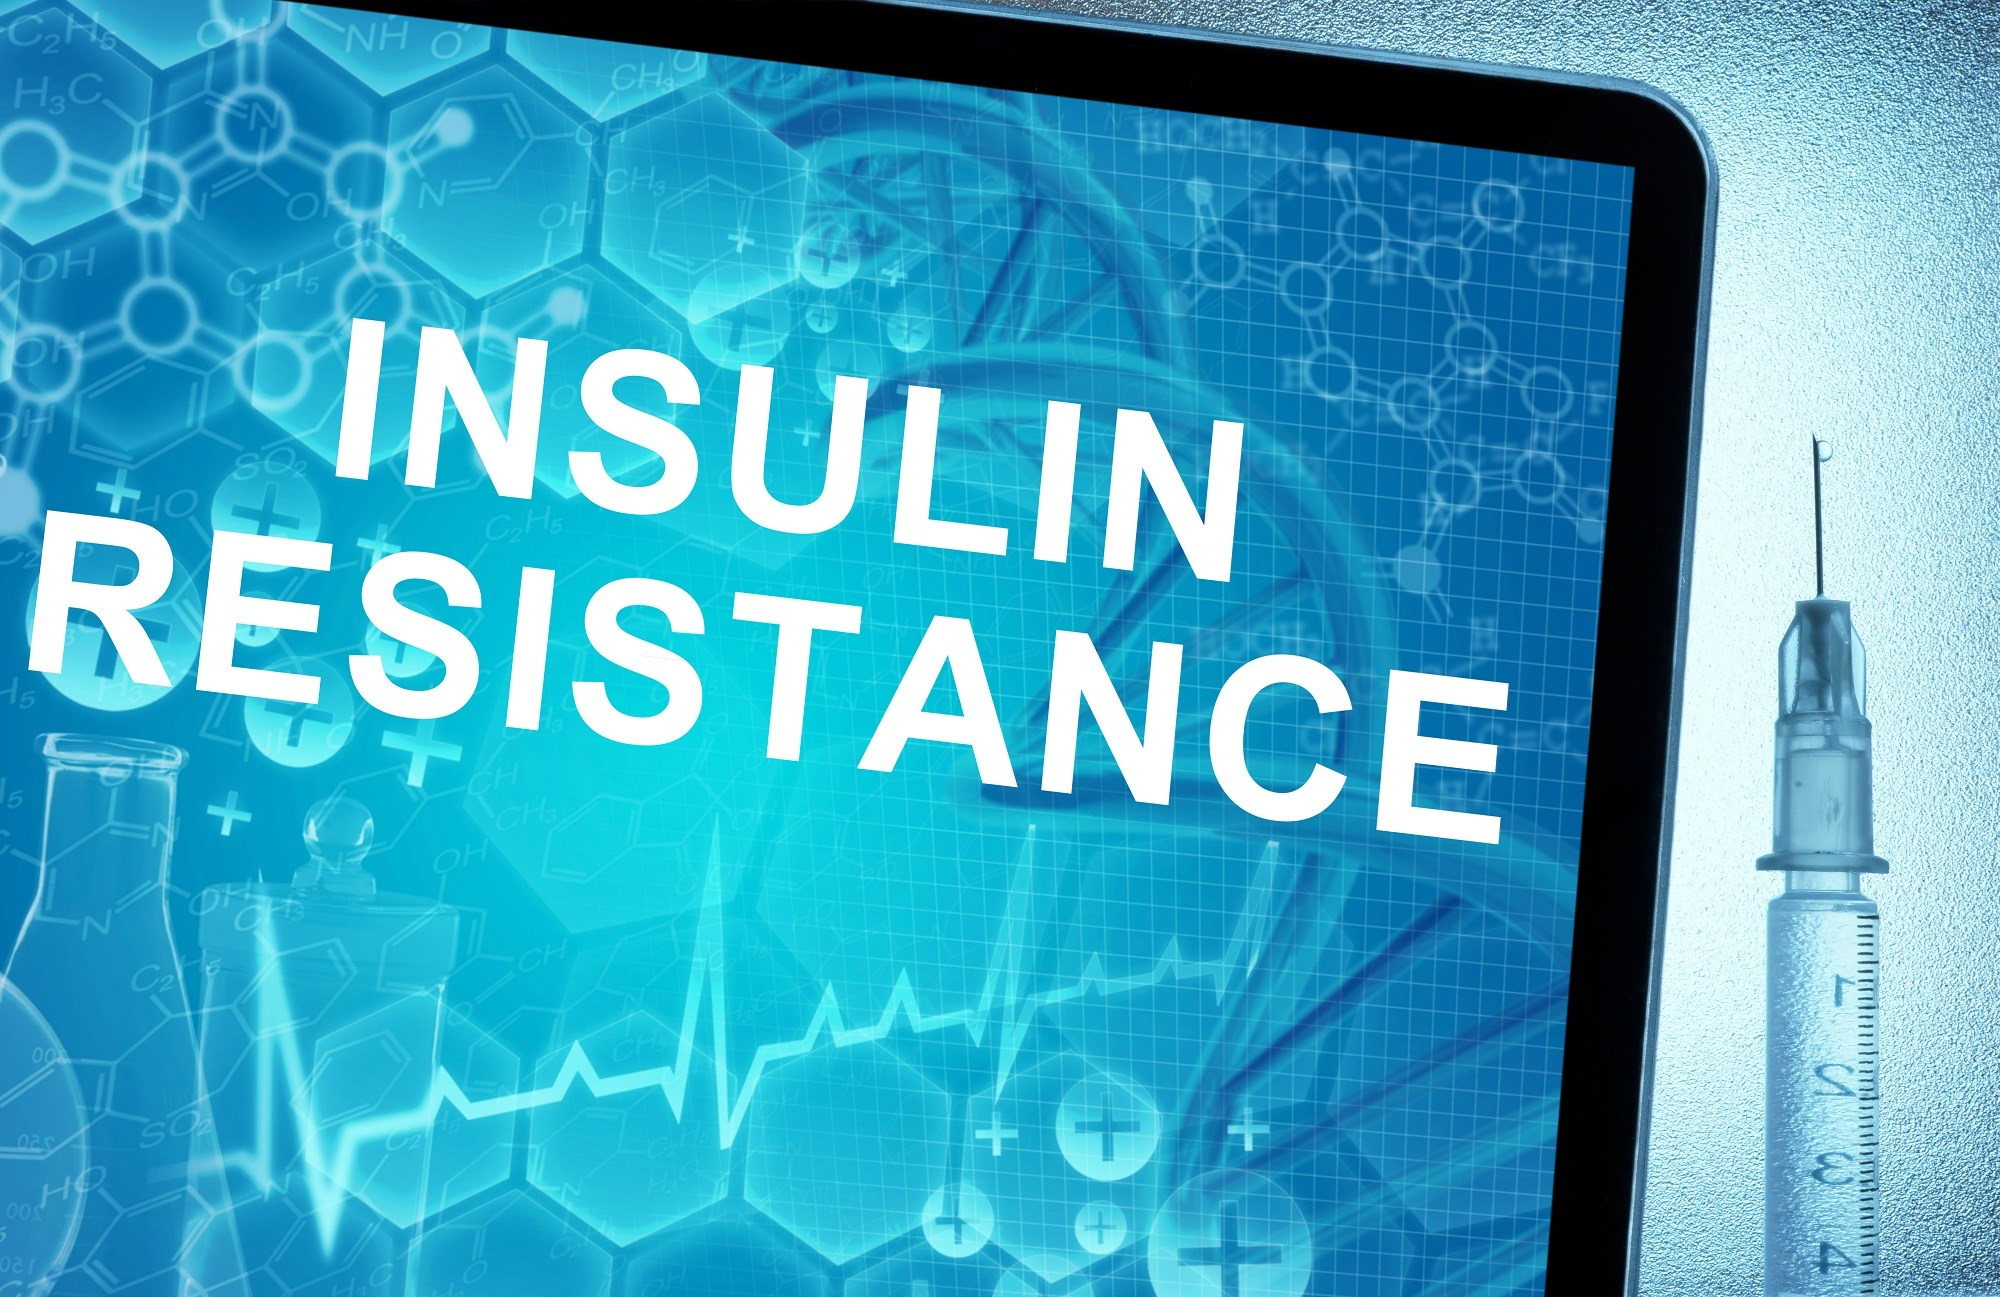 Insulin resistance is a common metabolic complication of obesity that has been implicated in the fat-bone connection.